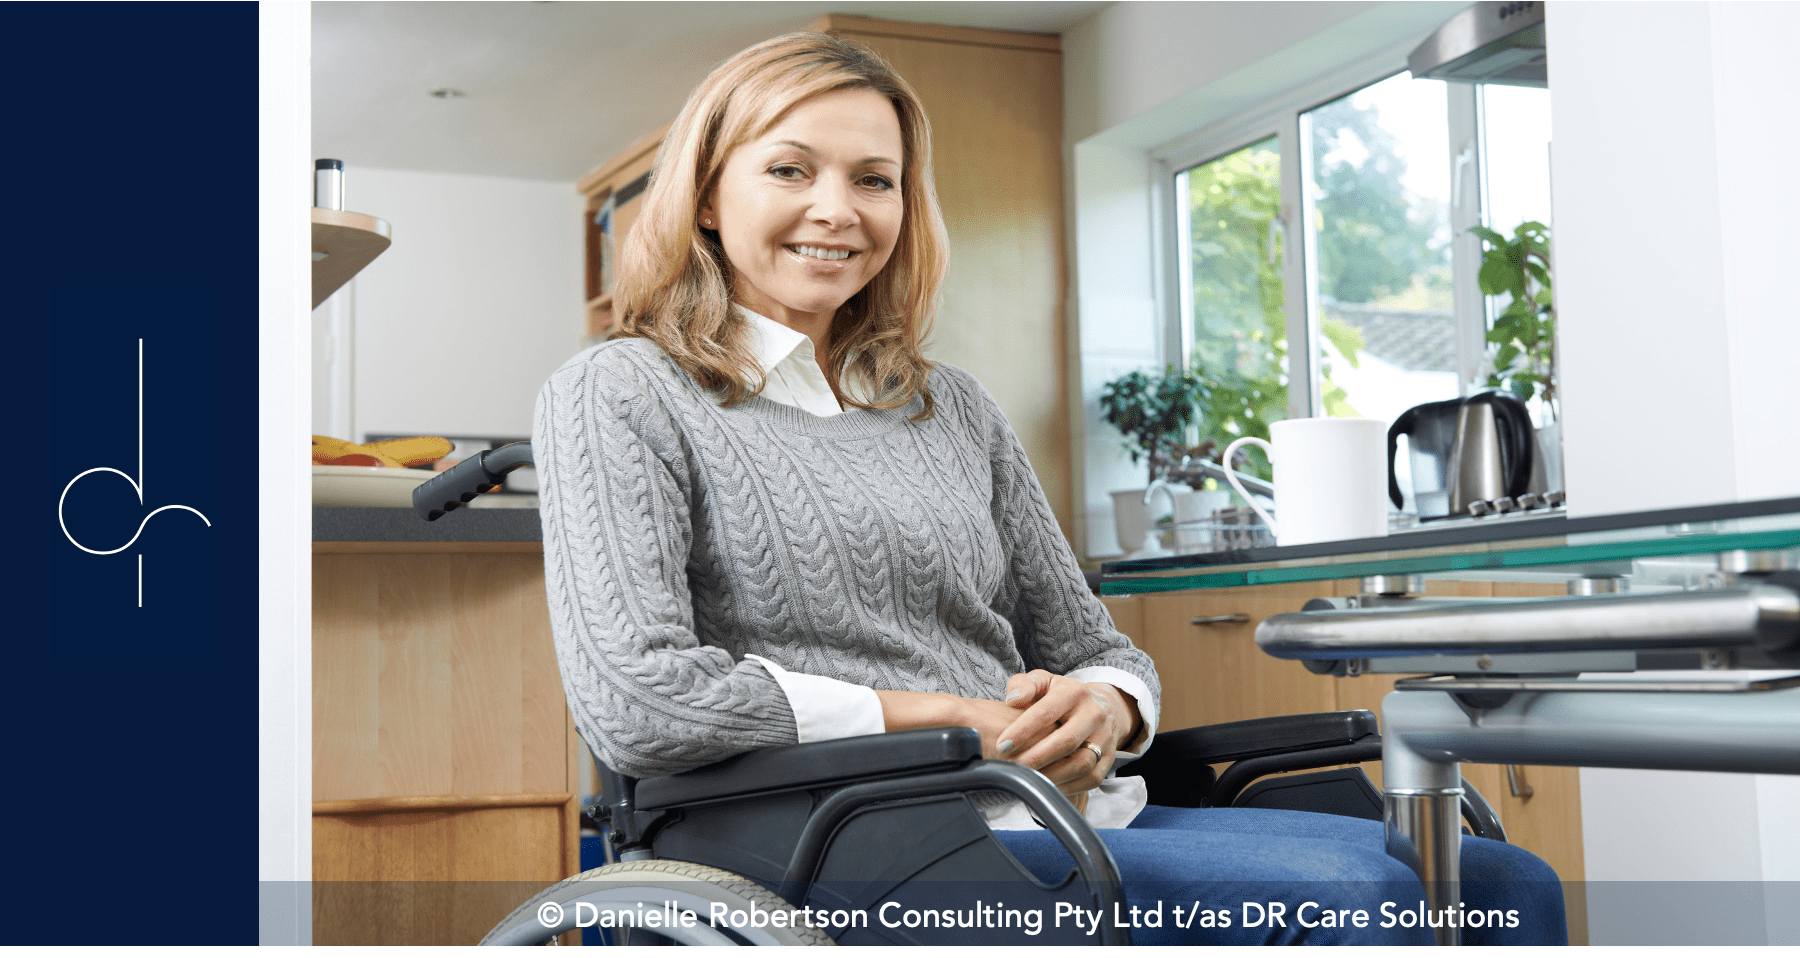 Choice & Control – What This Means for Disability Care in Australia